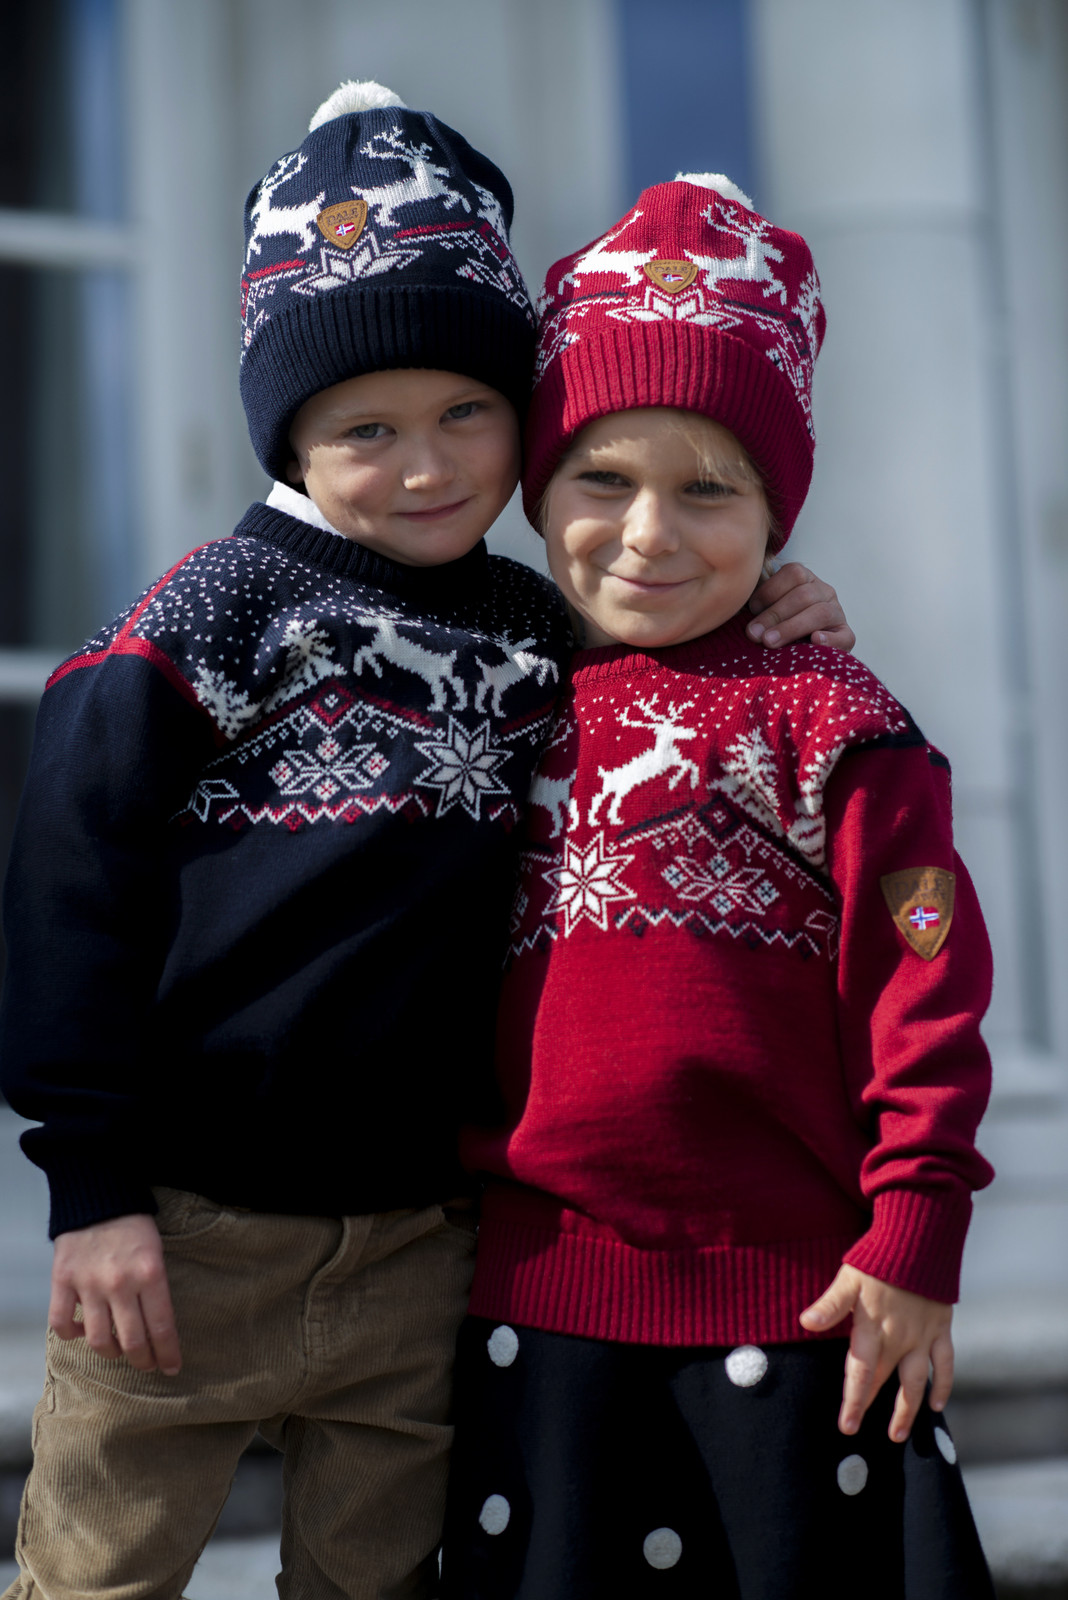 Kids wearing Dale of Norway Dale Christmas Kids' Hats in Navy and Raspberry